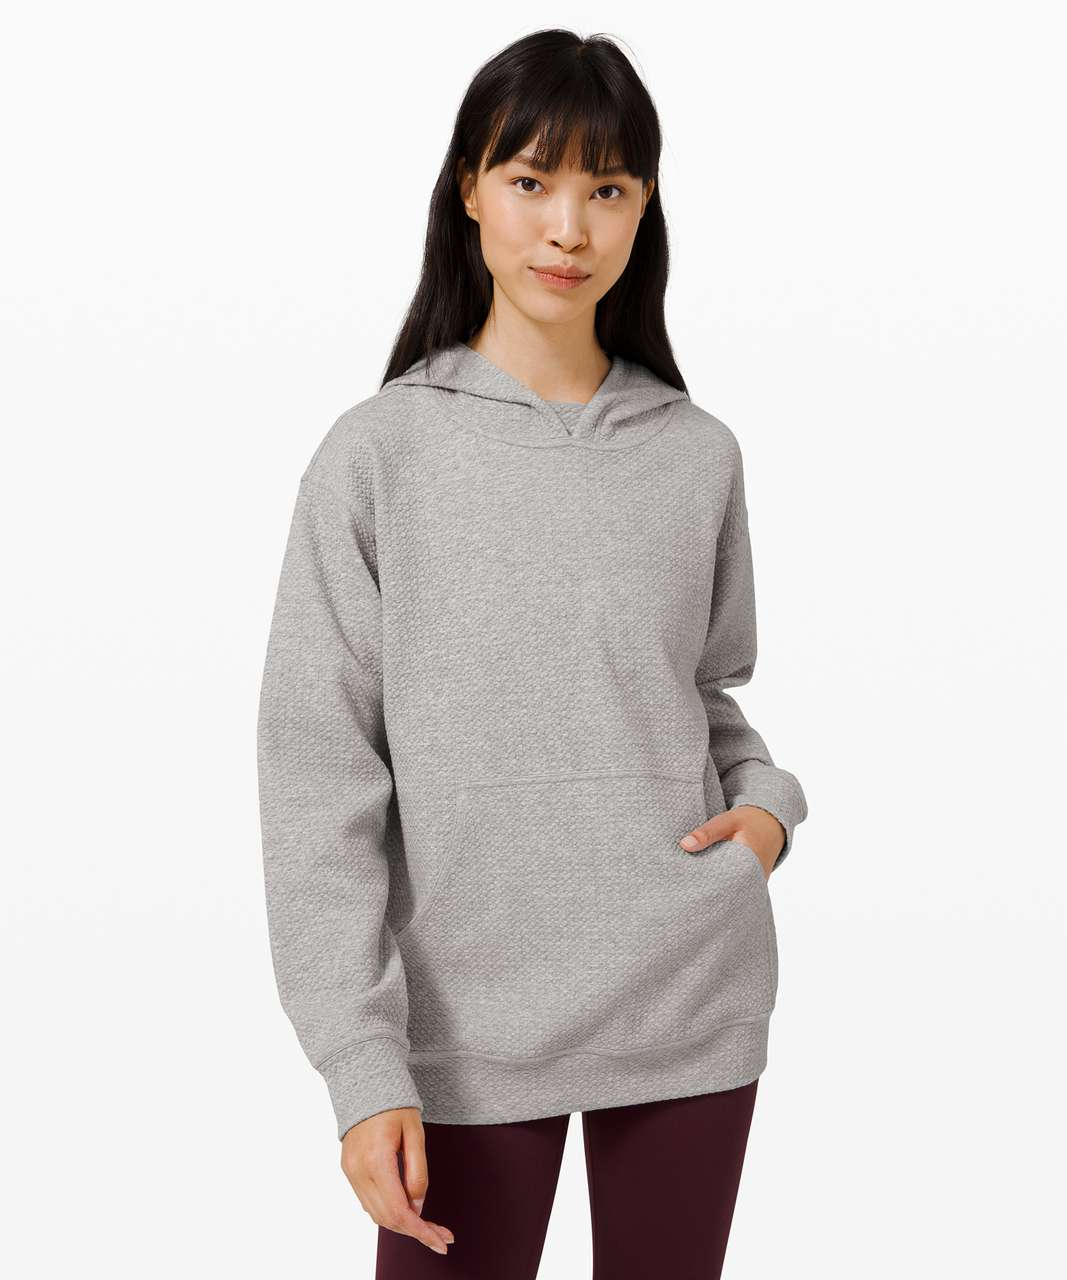 Lululemon All Yours Hoodie *Bubble Dot - Heathered Core Light Grey / White